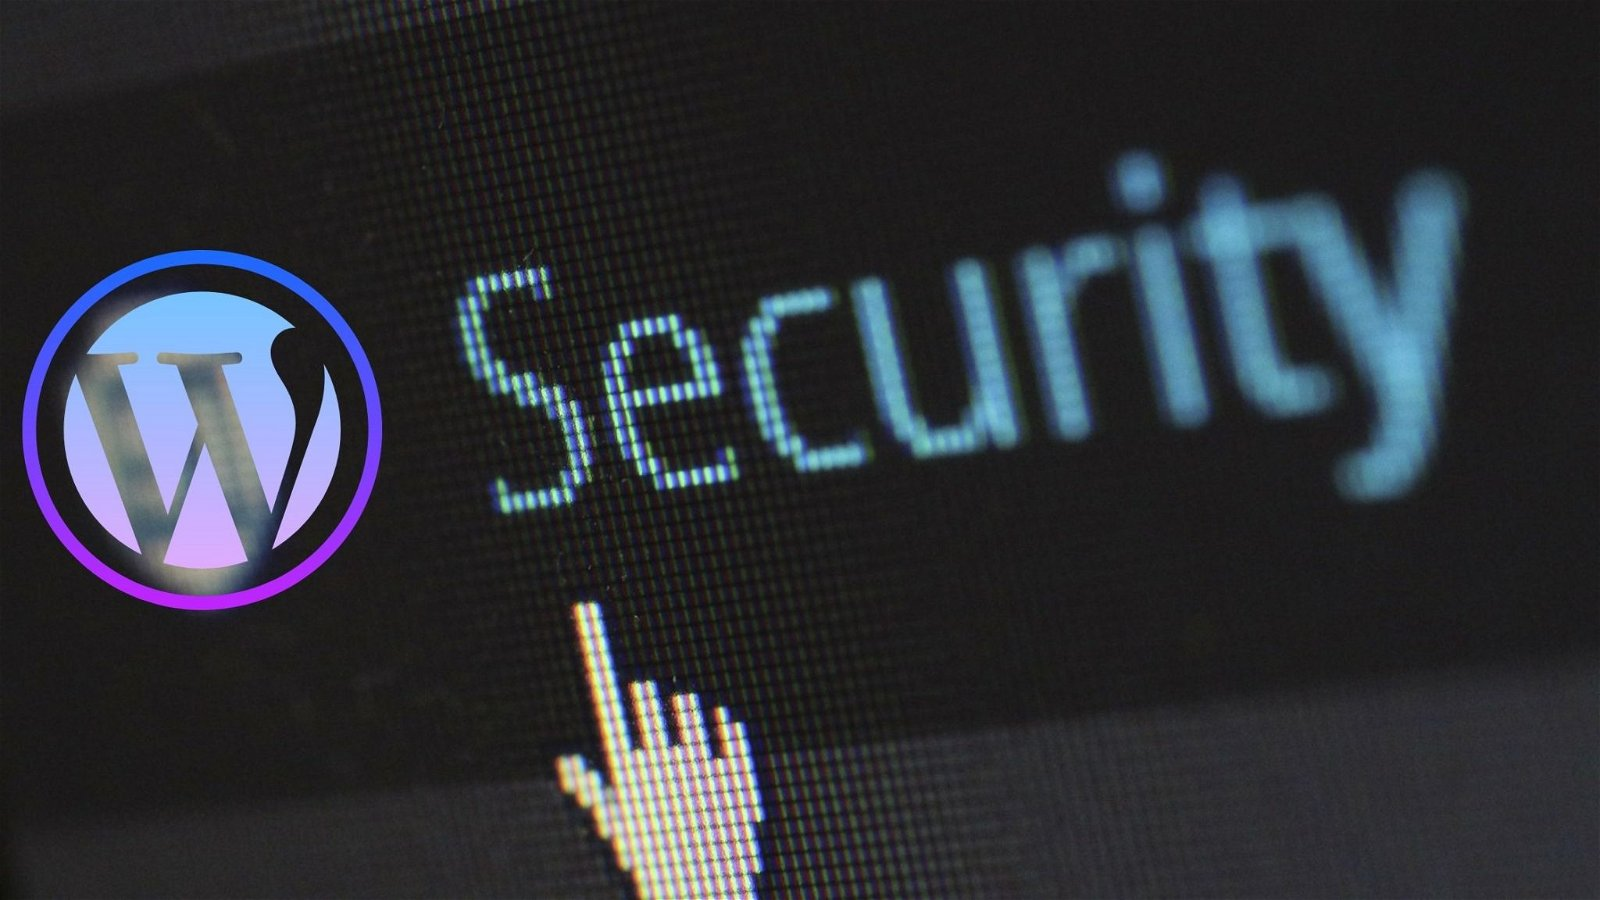 February's WordPress Security News and Updates